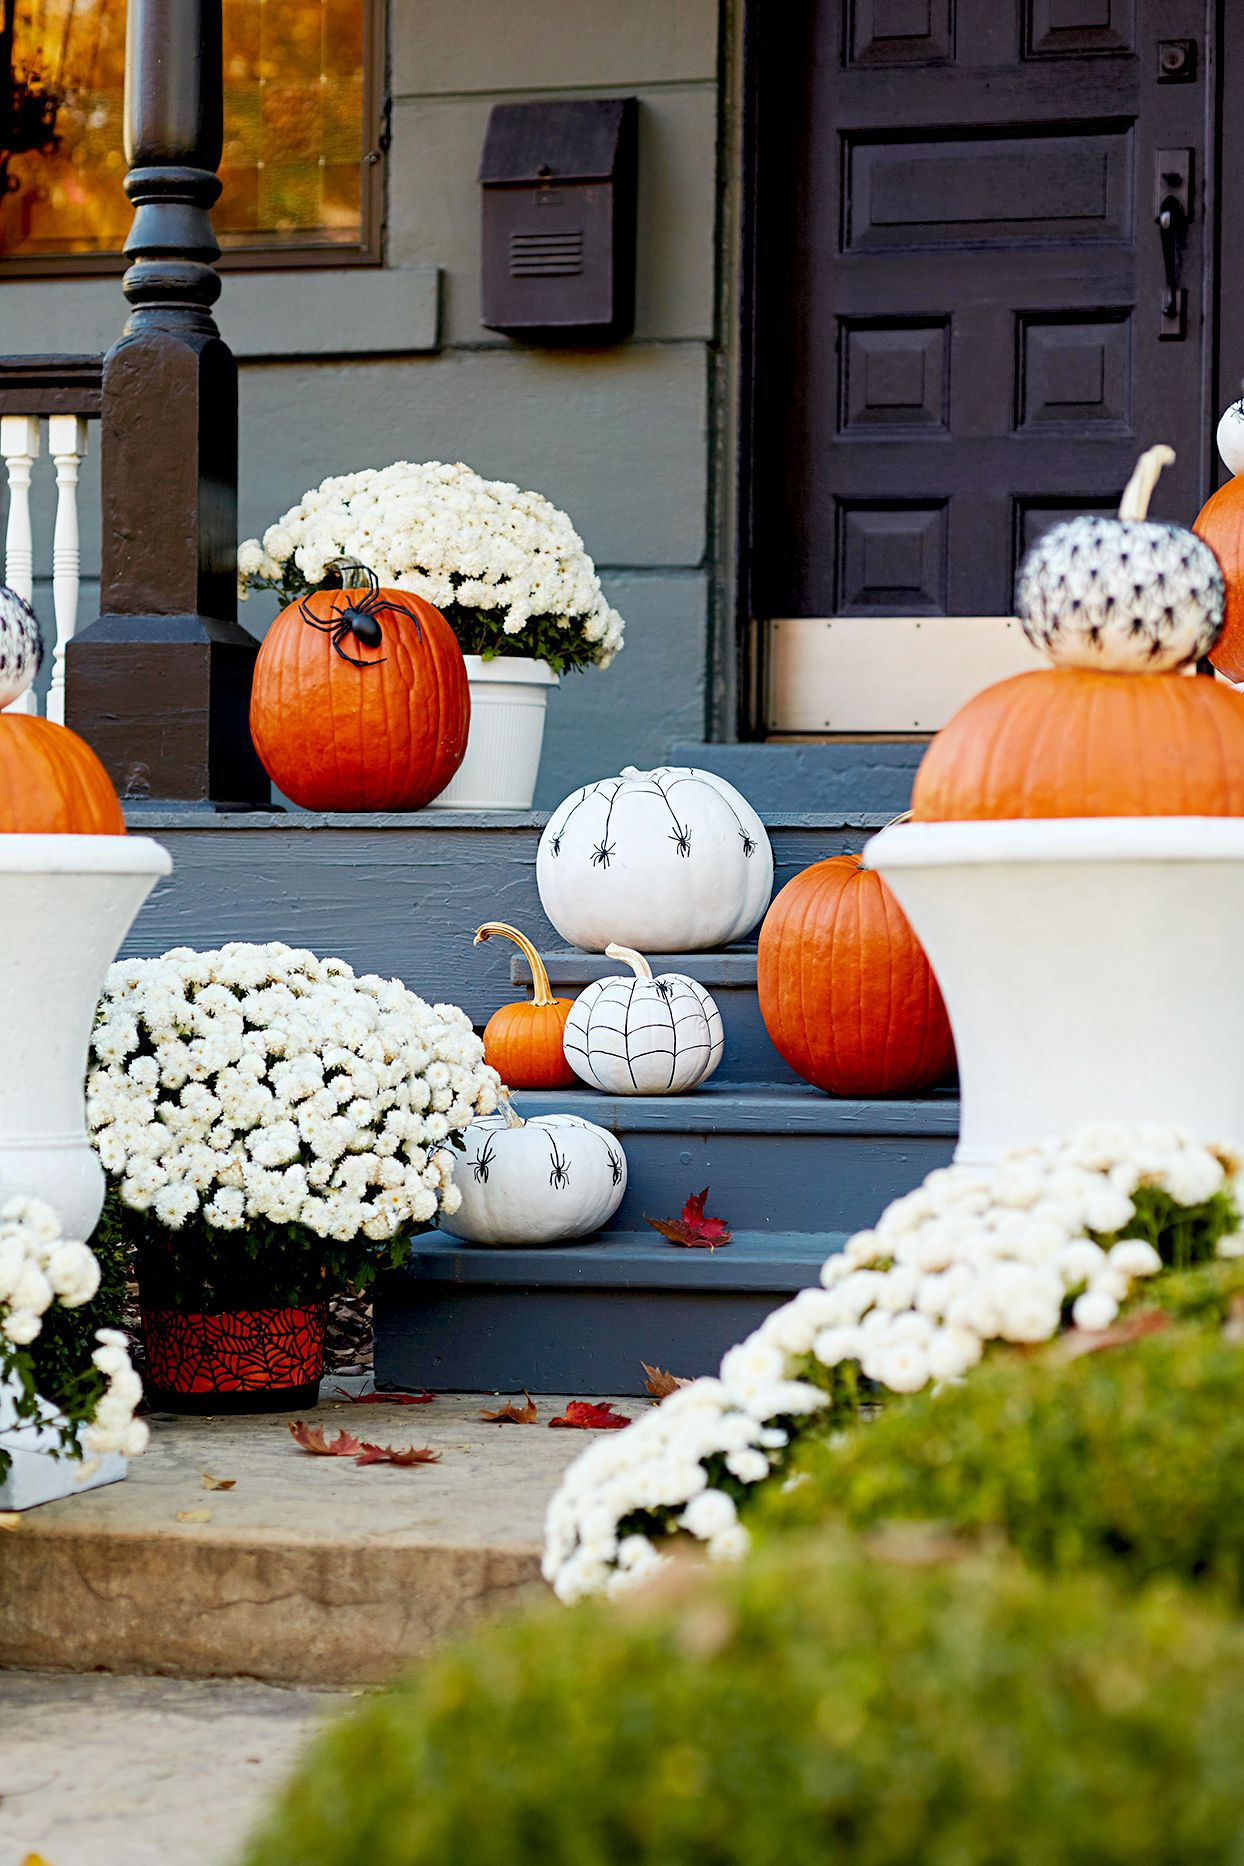 Beautiful Pumpkin Decorating Ideas To Get Your Home Ready For Fall Fall Decorations Porch Mums In Pumpkins Porch Decorating